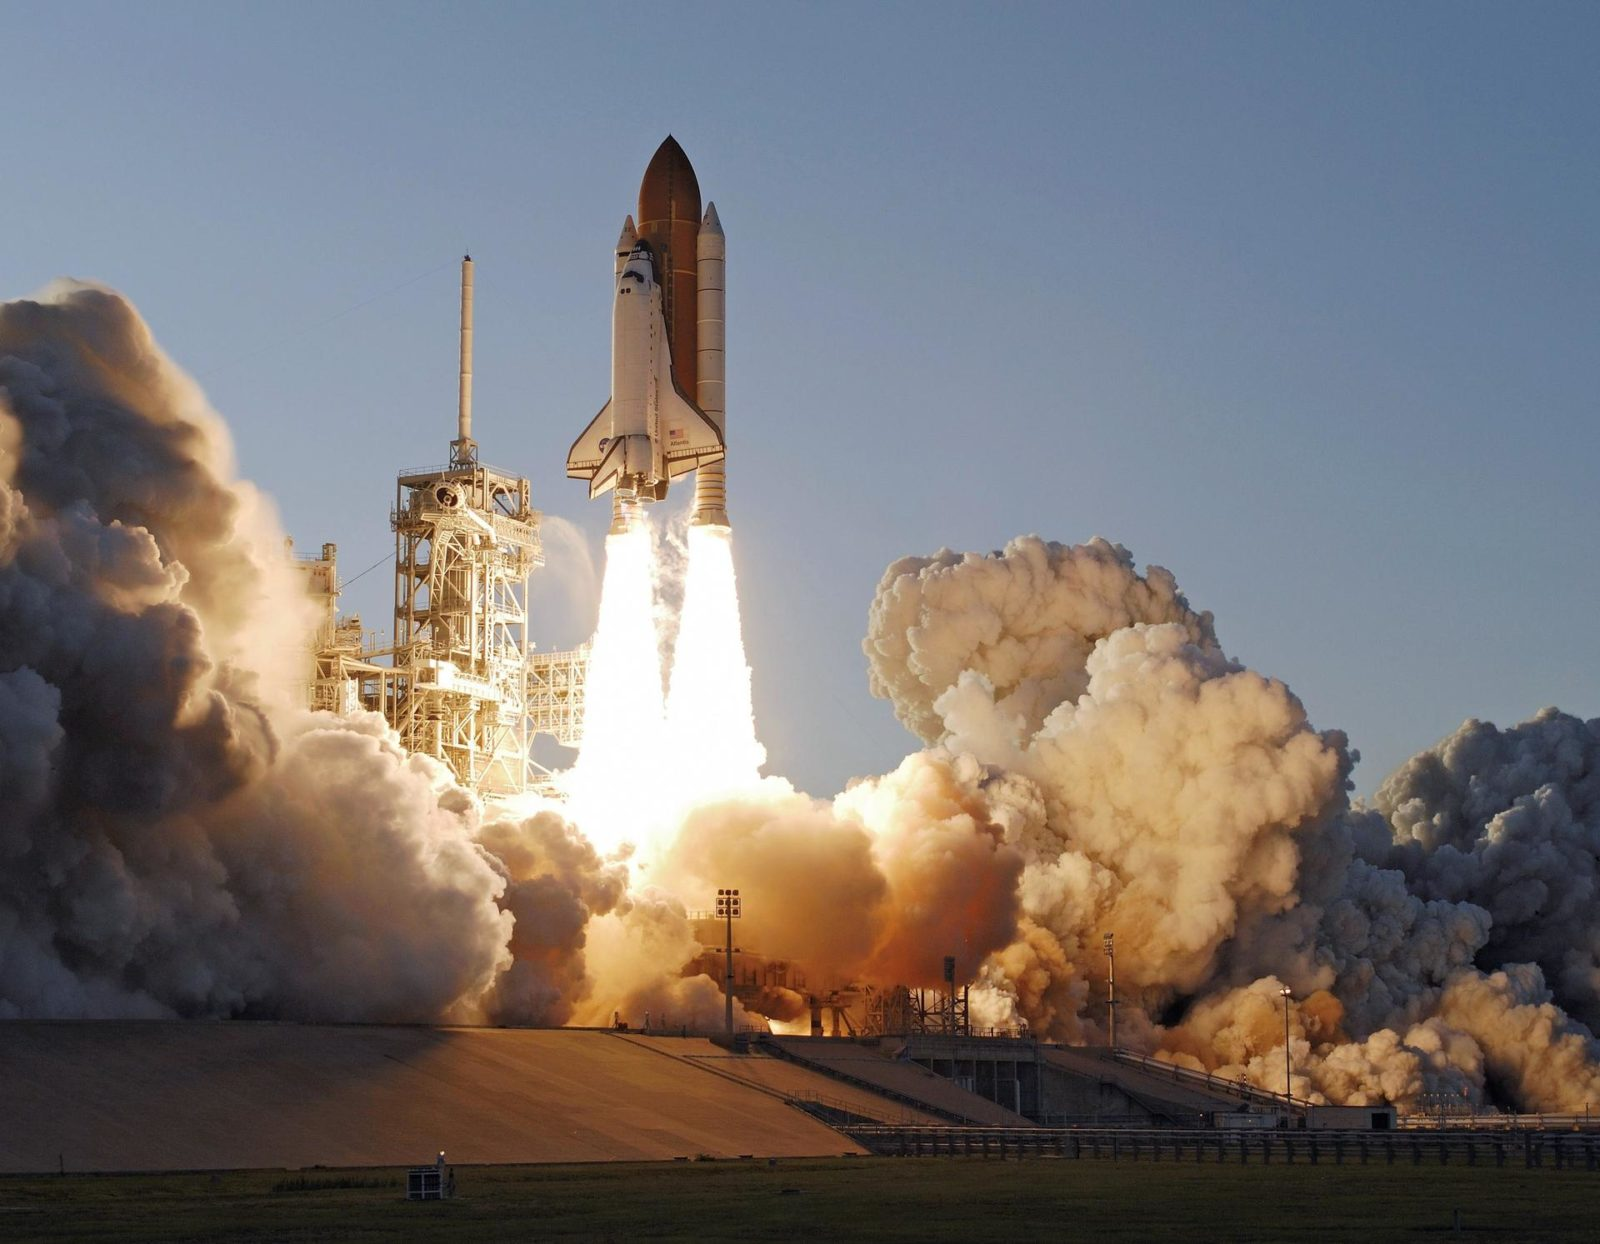 """STS117-S-027 (8 June 2007) --- The Space Shuttle Atlantis and its seven-member STS-117 crew head toward Earth-orbit and a scheduled link-up with the International Space Station. Liftoff from Kennedy Space Center's launch pad 39A occurred at 7:38 p.m. (EDT) on June 8, 2007. Onboard are astronauts Rick Sturckow, commander; Lee Archambault, pilot; Jim Reilly, Patrick Forrester, John """"Danny"""" Olivas, Steven Swanson and Clayton Anderson, all mission specialists. Anderson will join Expedition 15 in progress to serve as a flight engineer aboard the station. Atlantis will dock with the orbital outpost on Sunday, June 10, to begin a joint mission that will increase the complex's power generation capability. Using the shuttle and station robotic arms and conducting three scheduled spacewalks, the astronauts will install another set of giant solar array wings on the station and retract another array, preparing it for a future move. STS117-S-027"""